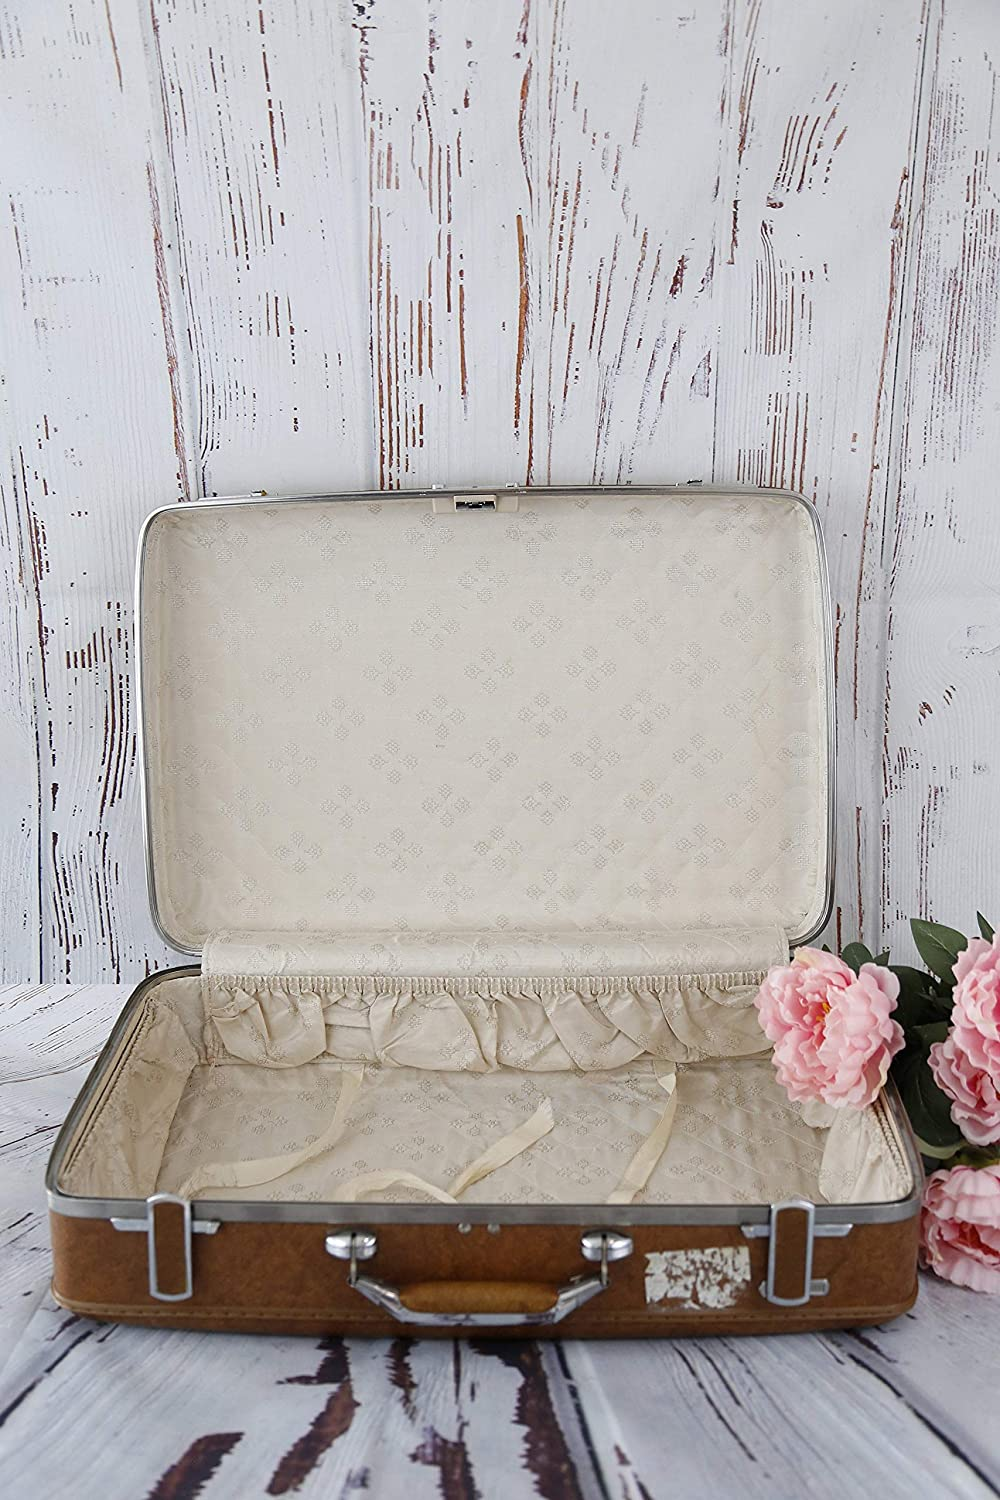 Vintage Trunk Retro Luggage Travel Suitcase Chest Nut Vintage Luggage American Tourister Medium Vintage Luggage Vintage Suitcase